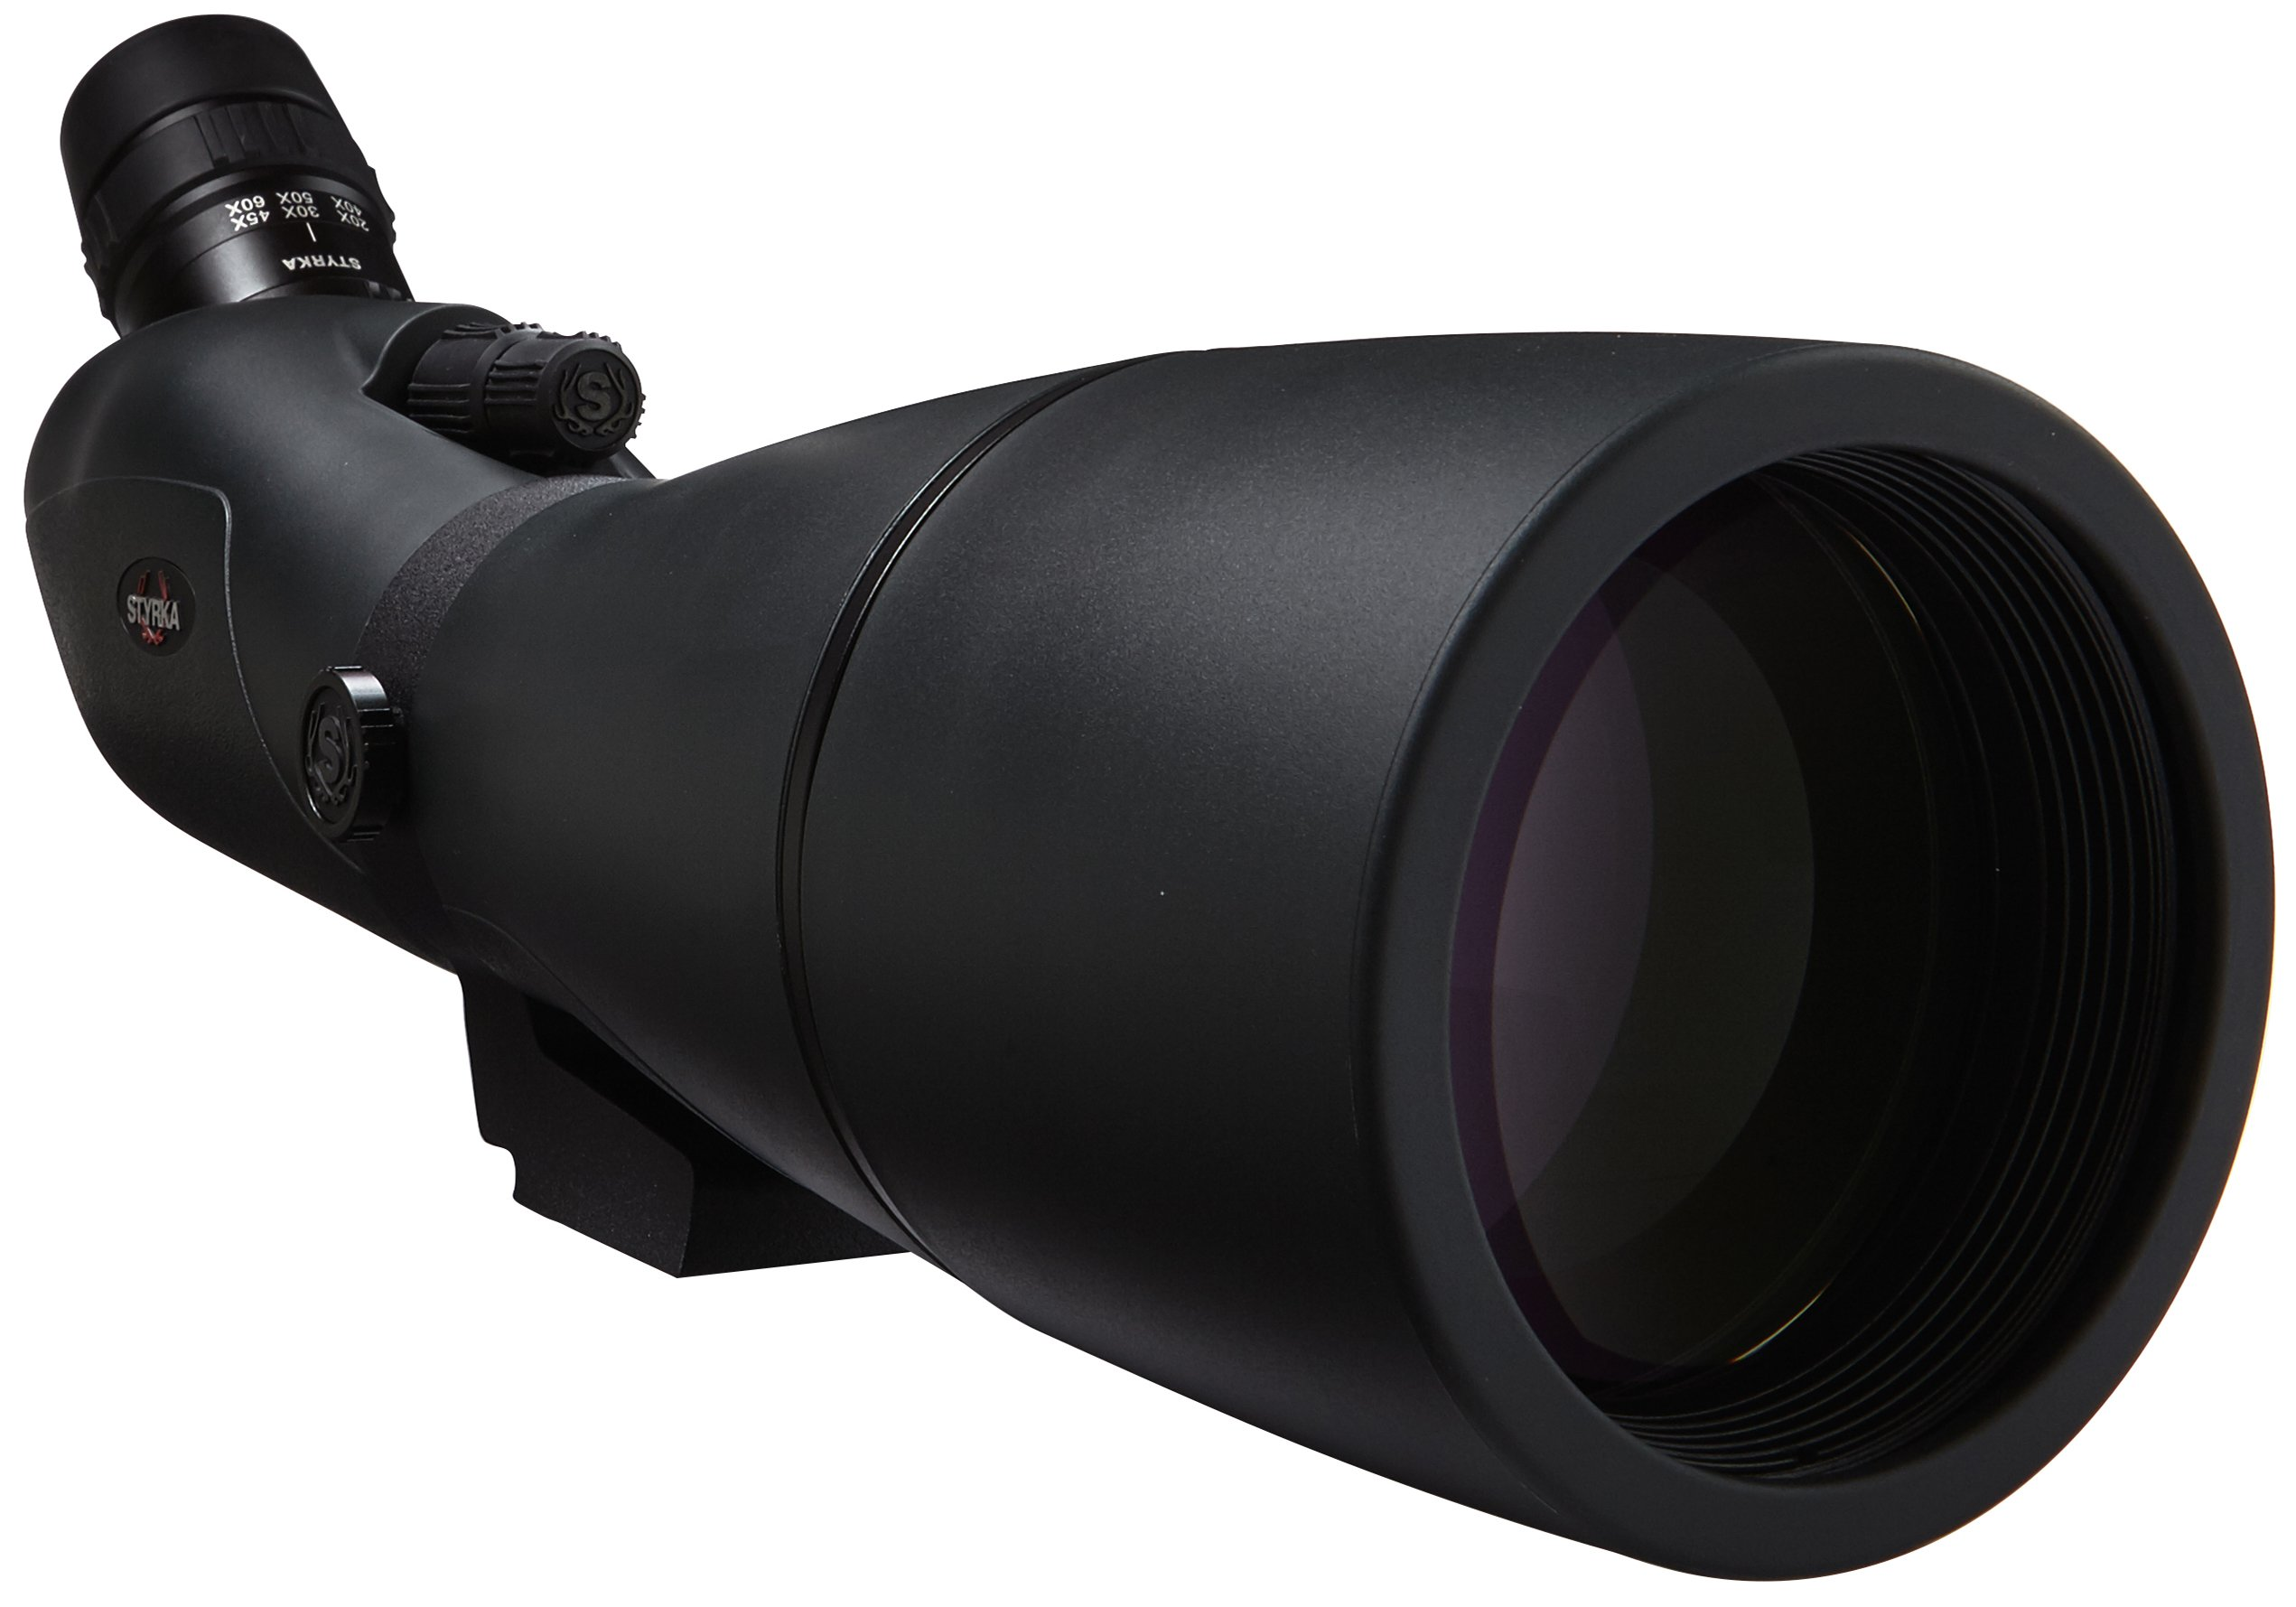 Styrka S7 Series 20-60x80 ED Spotting Scope, Dark Green, ST-15512 - Waterproof Long Range Spotting Scope for Target Shooting, Hunting, Archery, Bird Watching and Outdoor Recreation - Styrka Strong by Styrka